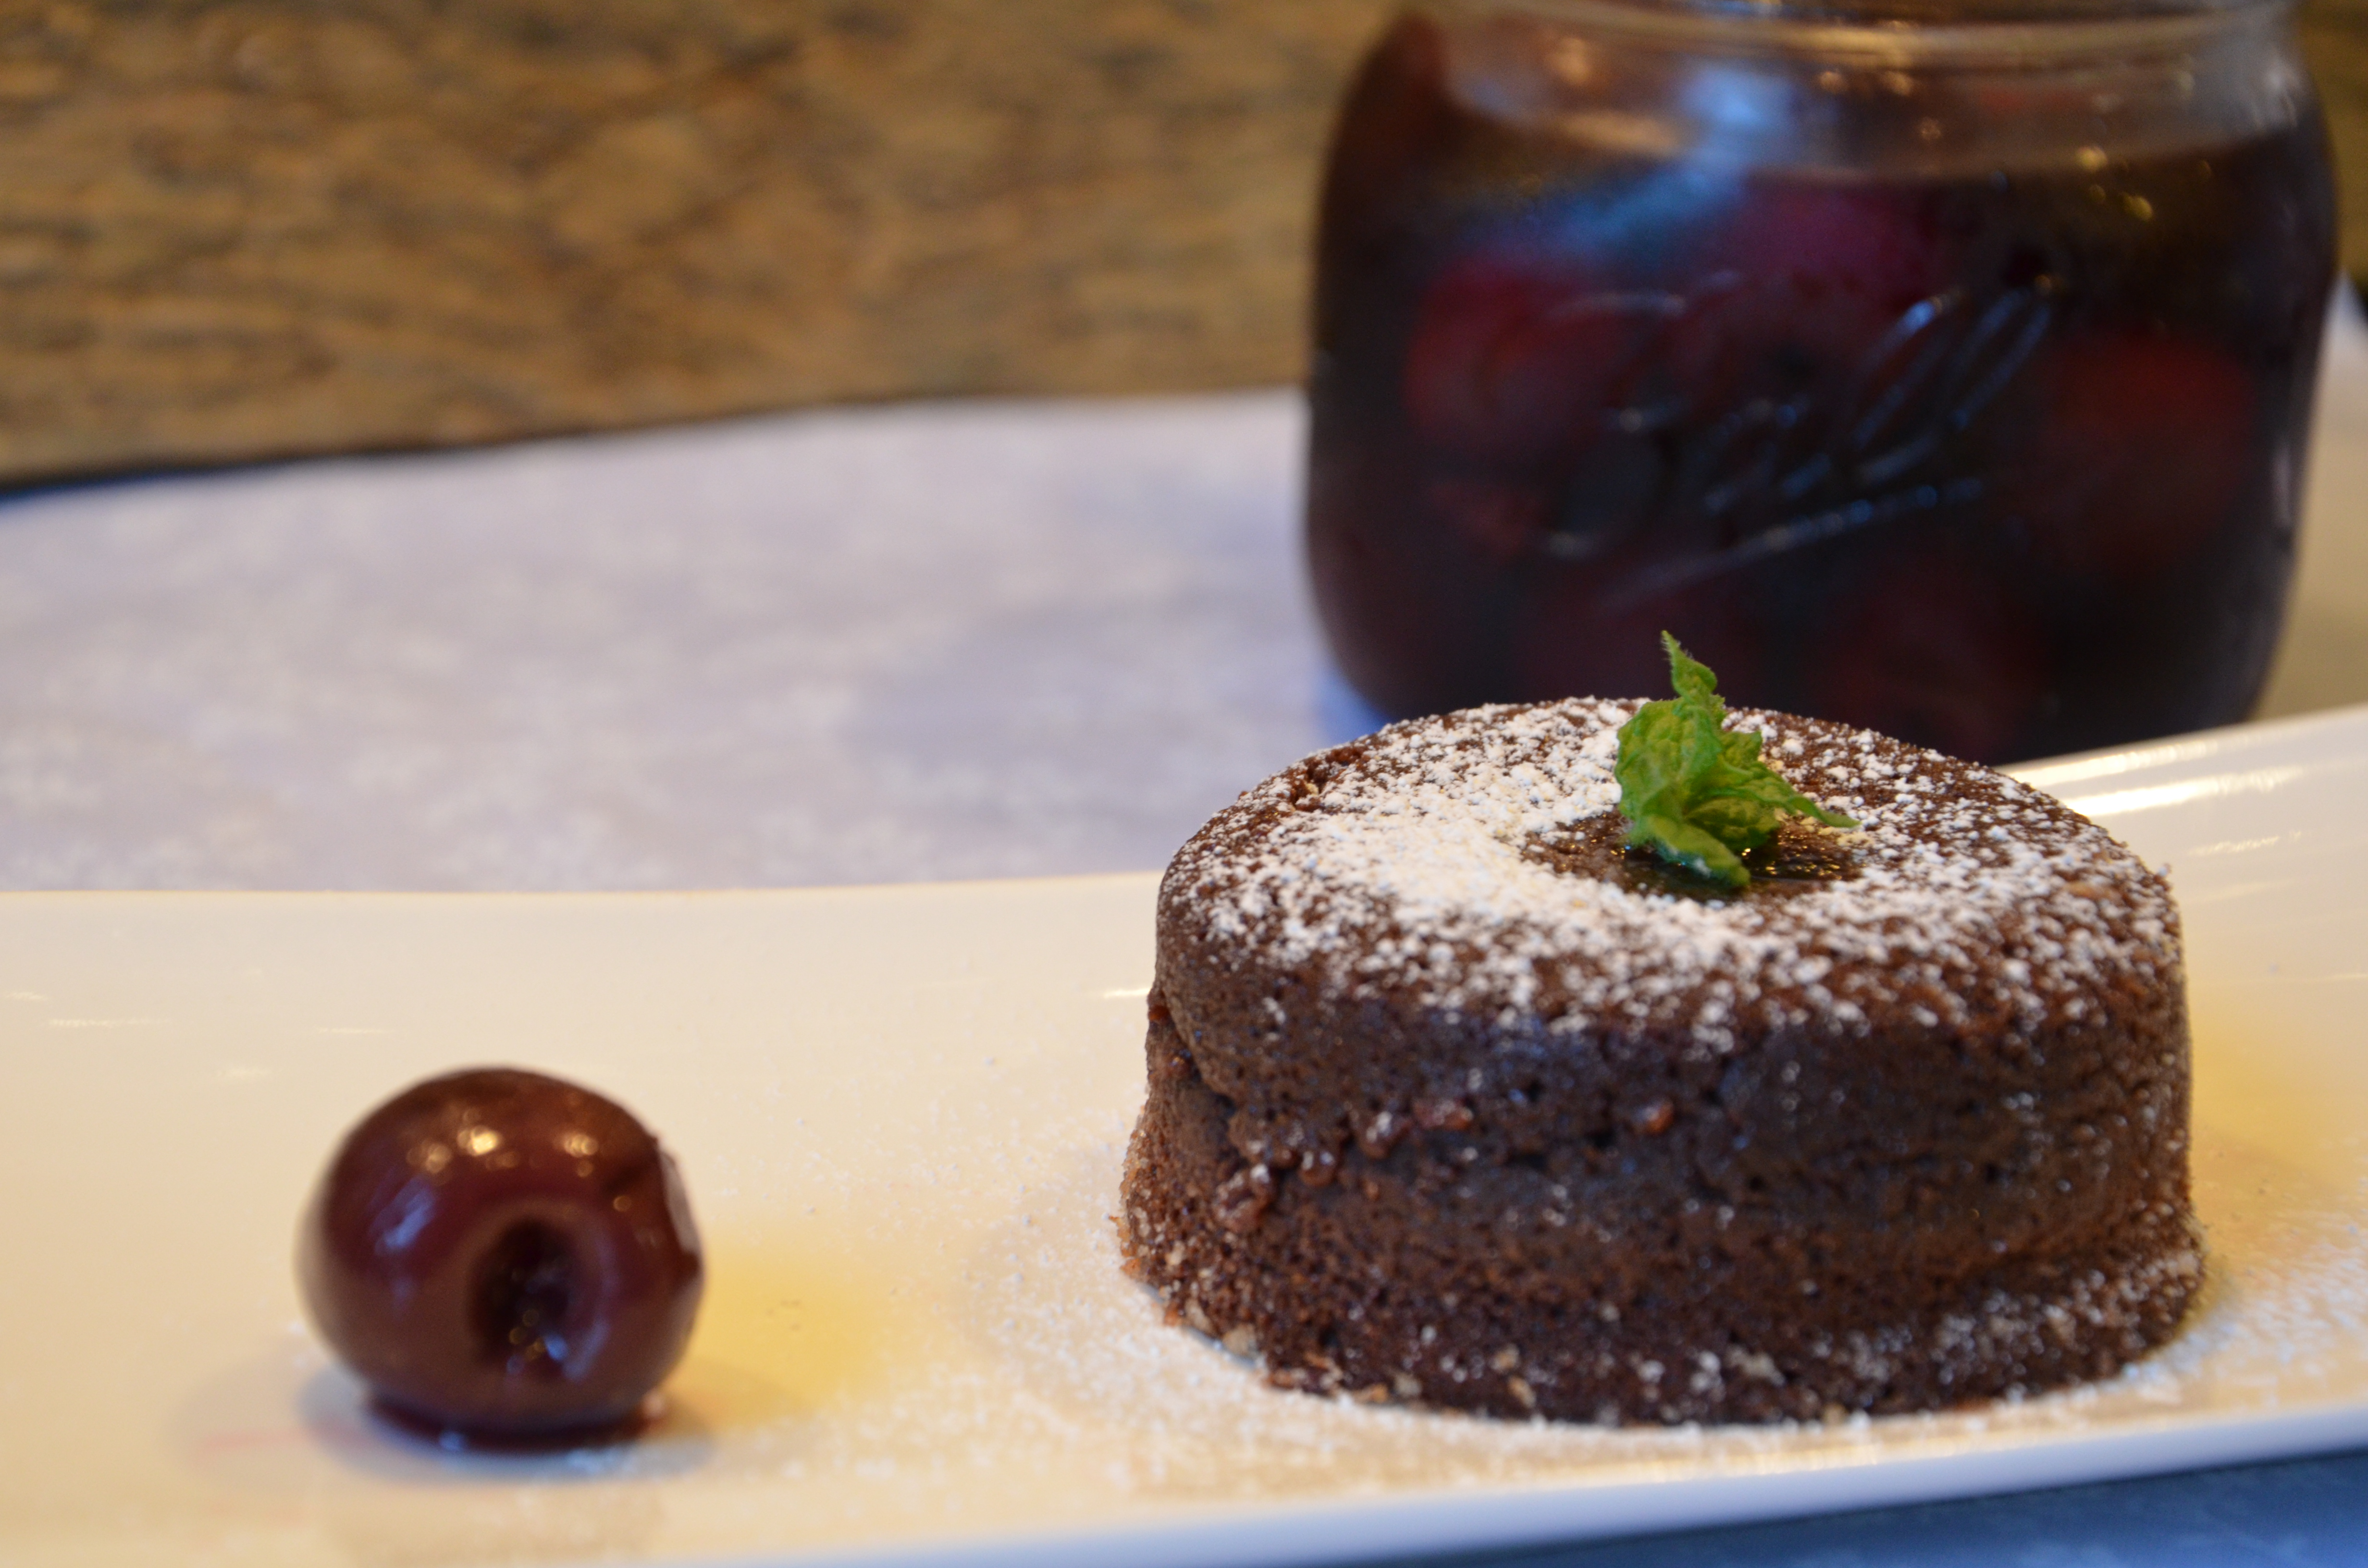 Annas Molten Lava Cakeapproved by Joe Bastianich